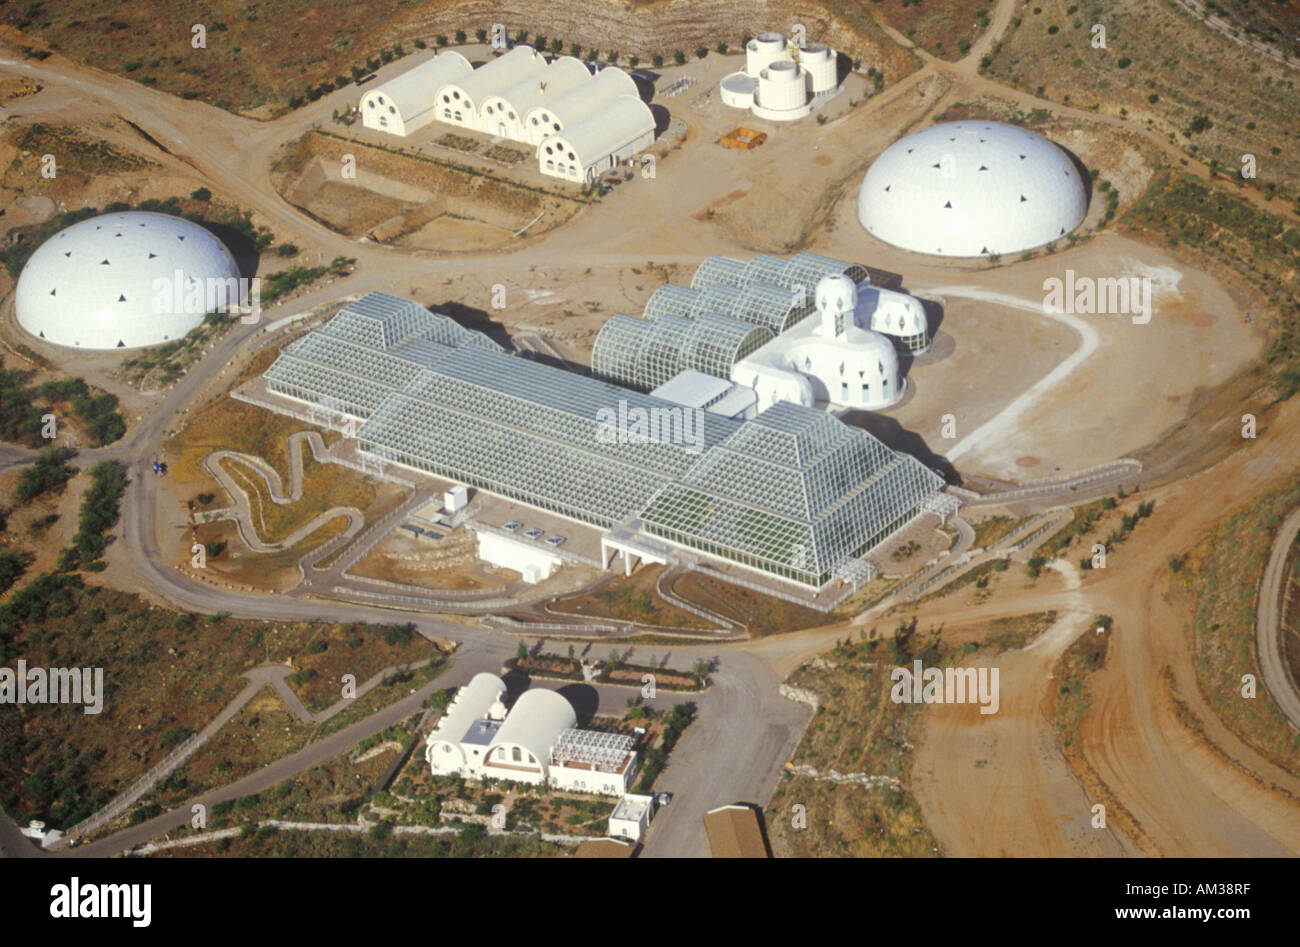 Aerial view of the enclosed ecosystem of Biosphere 2 at Oracle in Tucson AZ - Stock Image